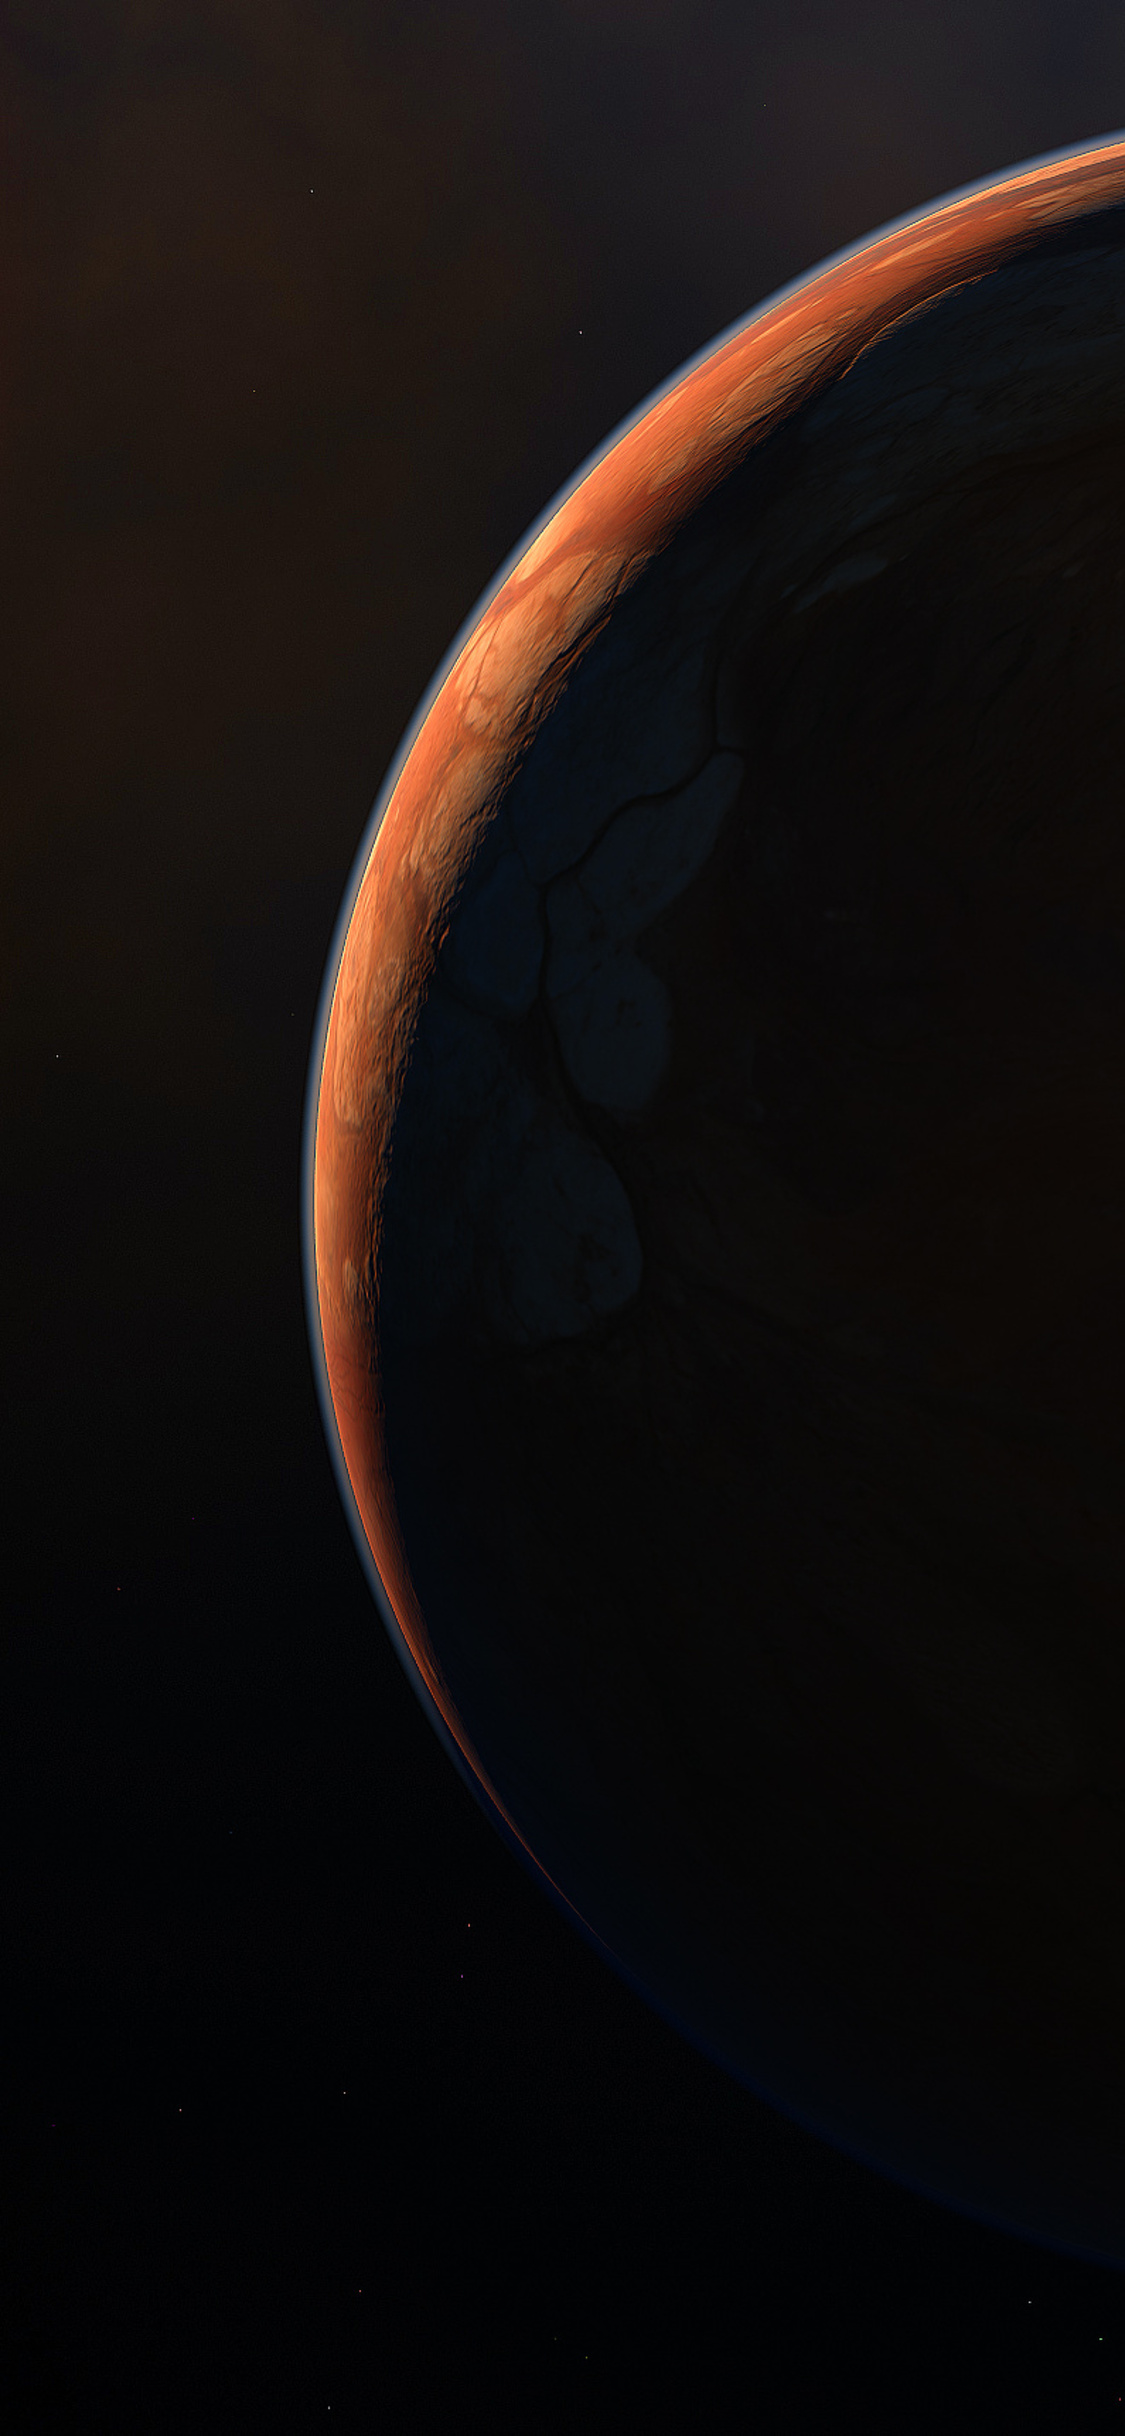 scifi-space-planet-4k-mw.jpg